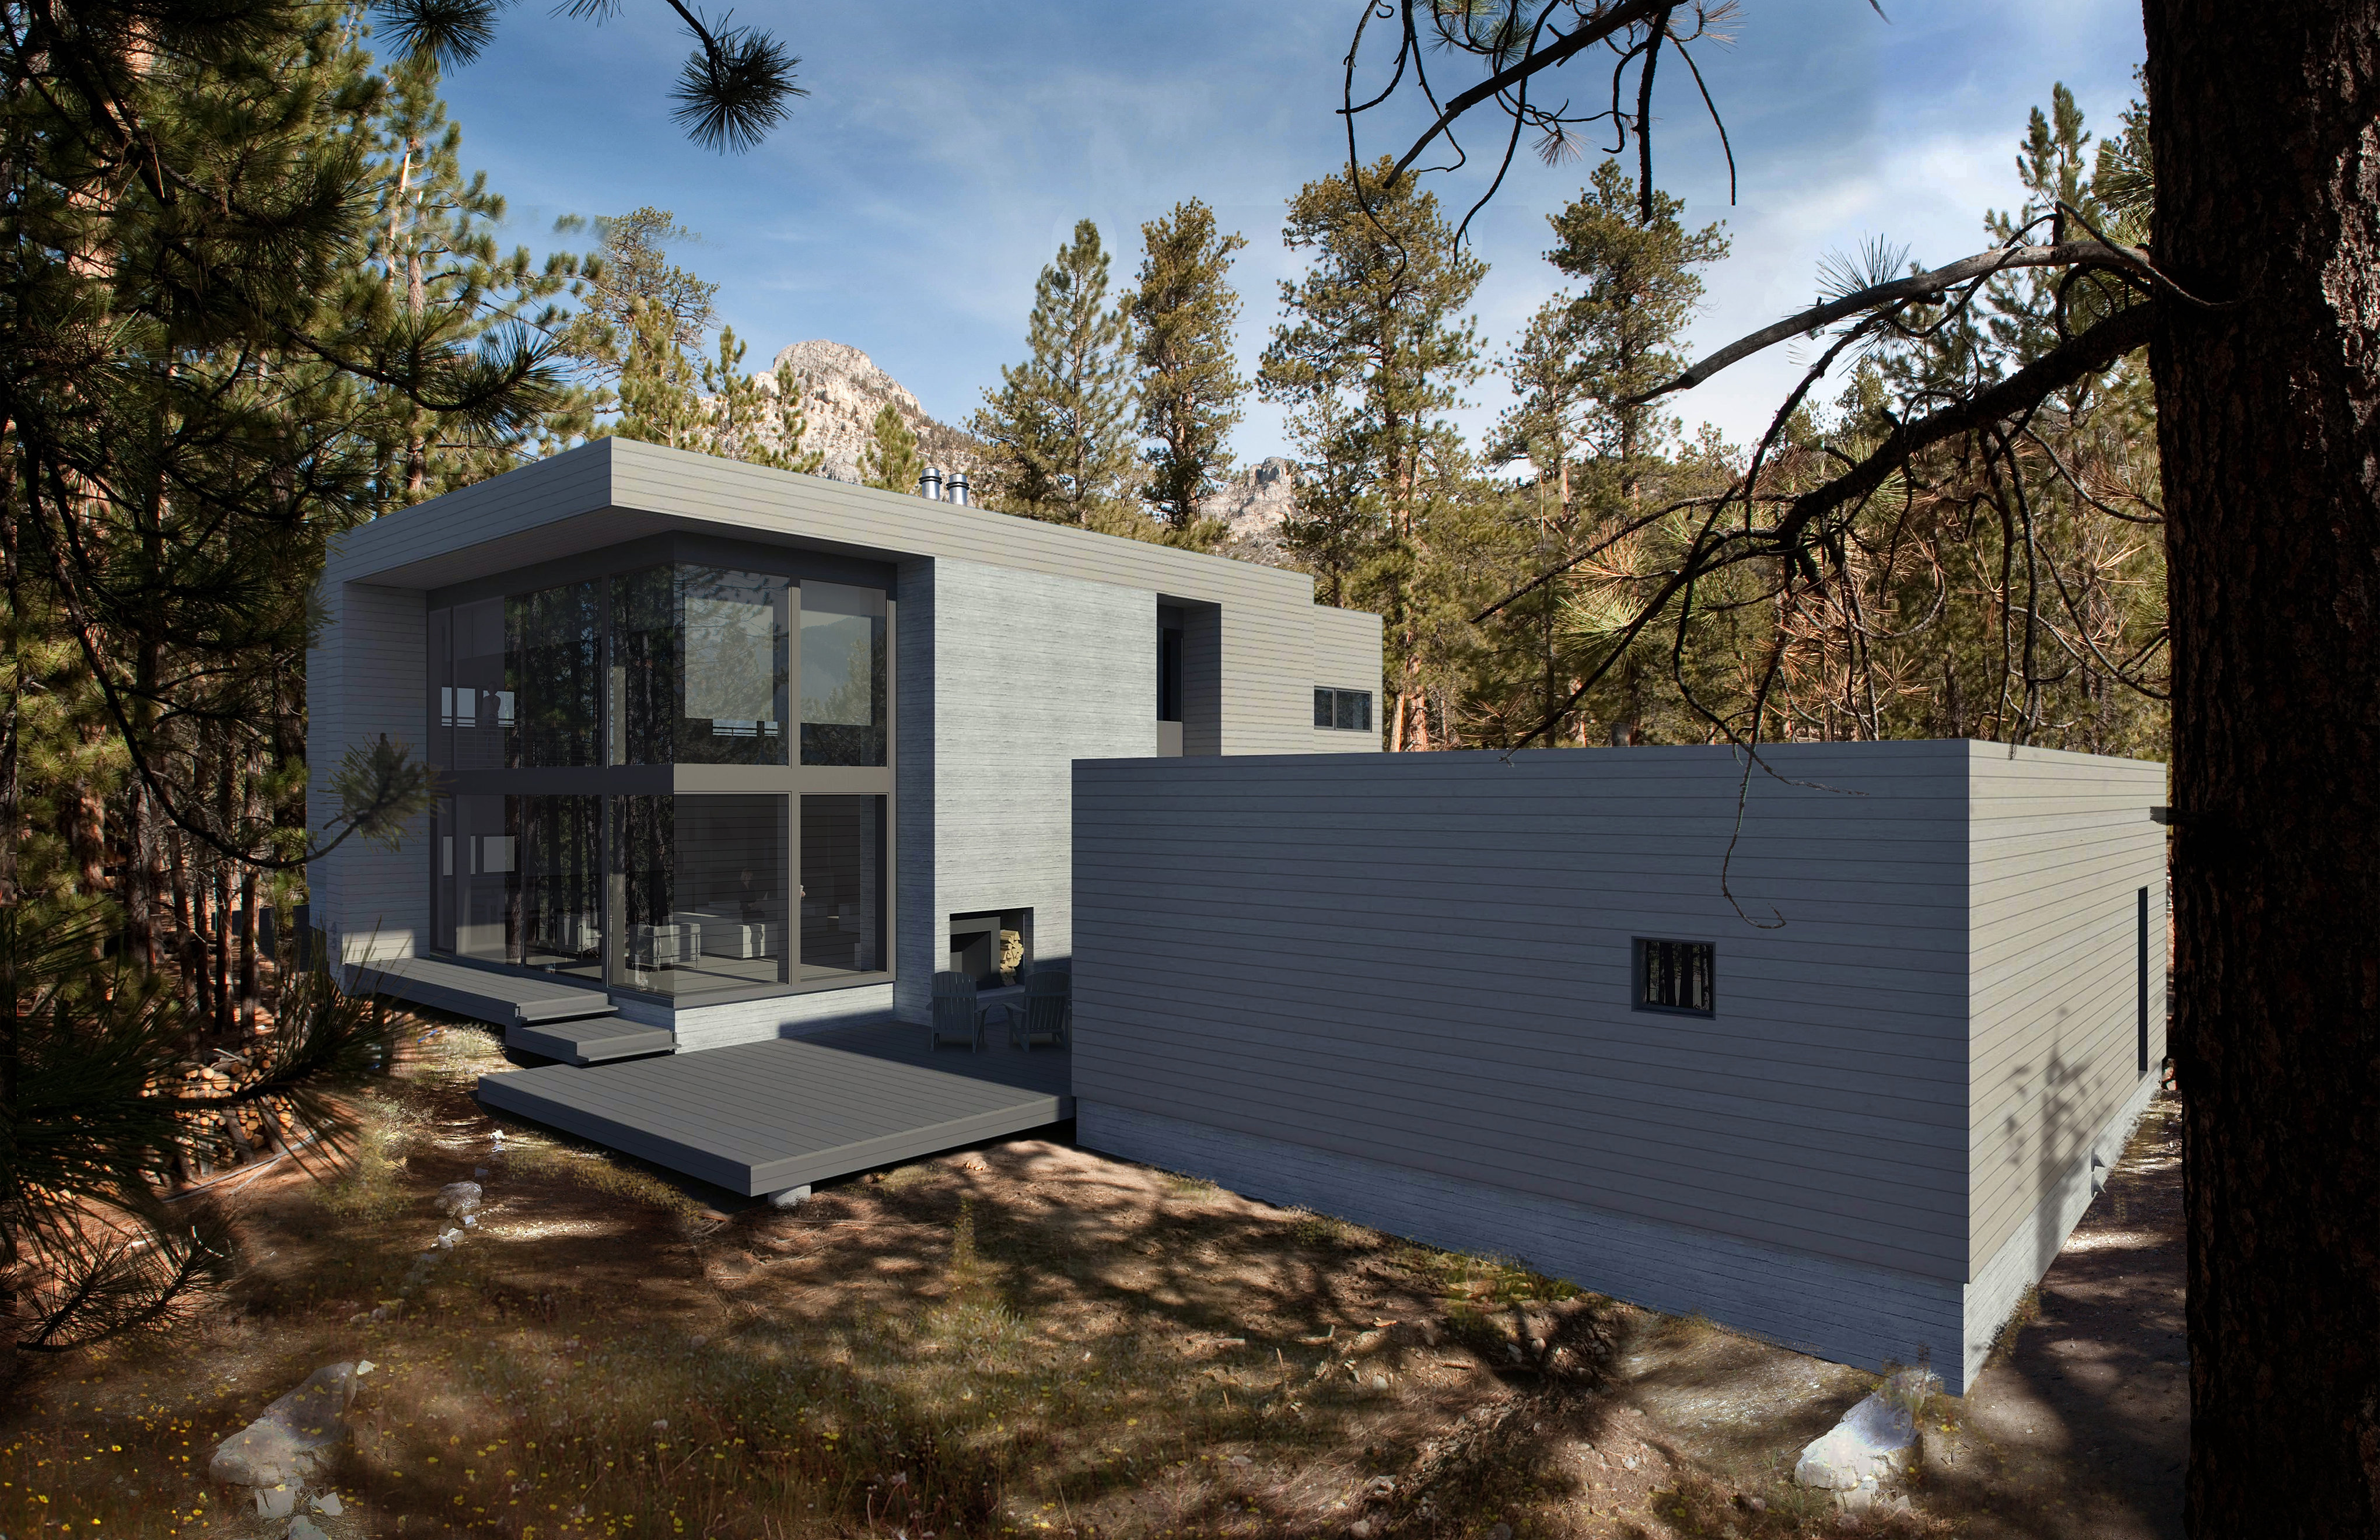 Hoogland Architecture Las Vegas Architect Las Vegas Residential House Design